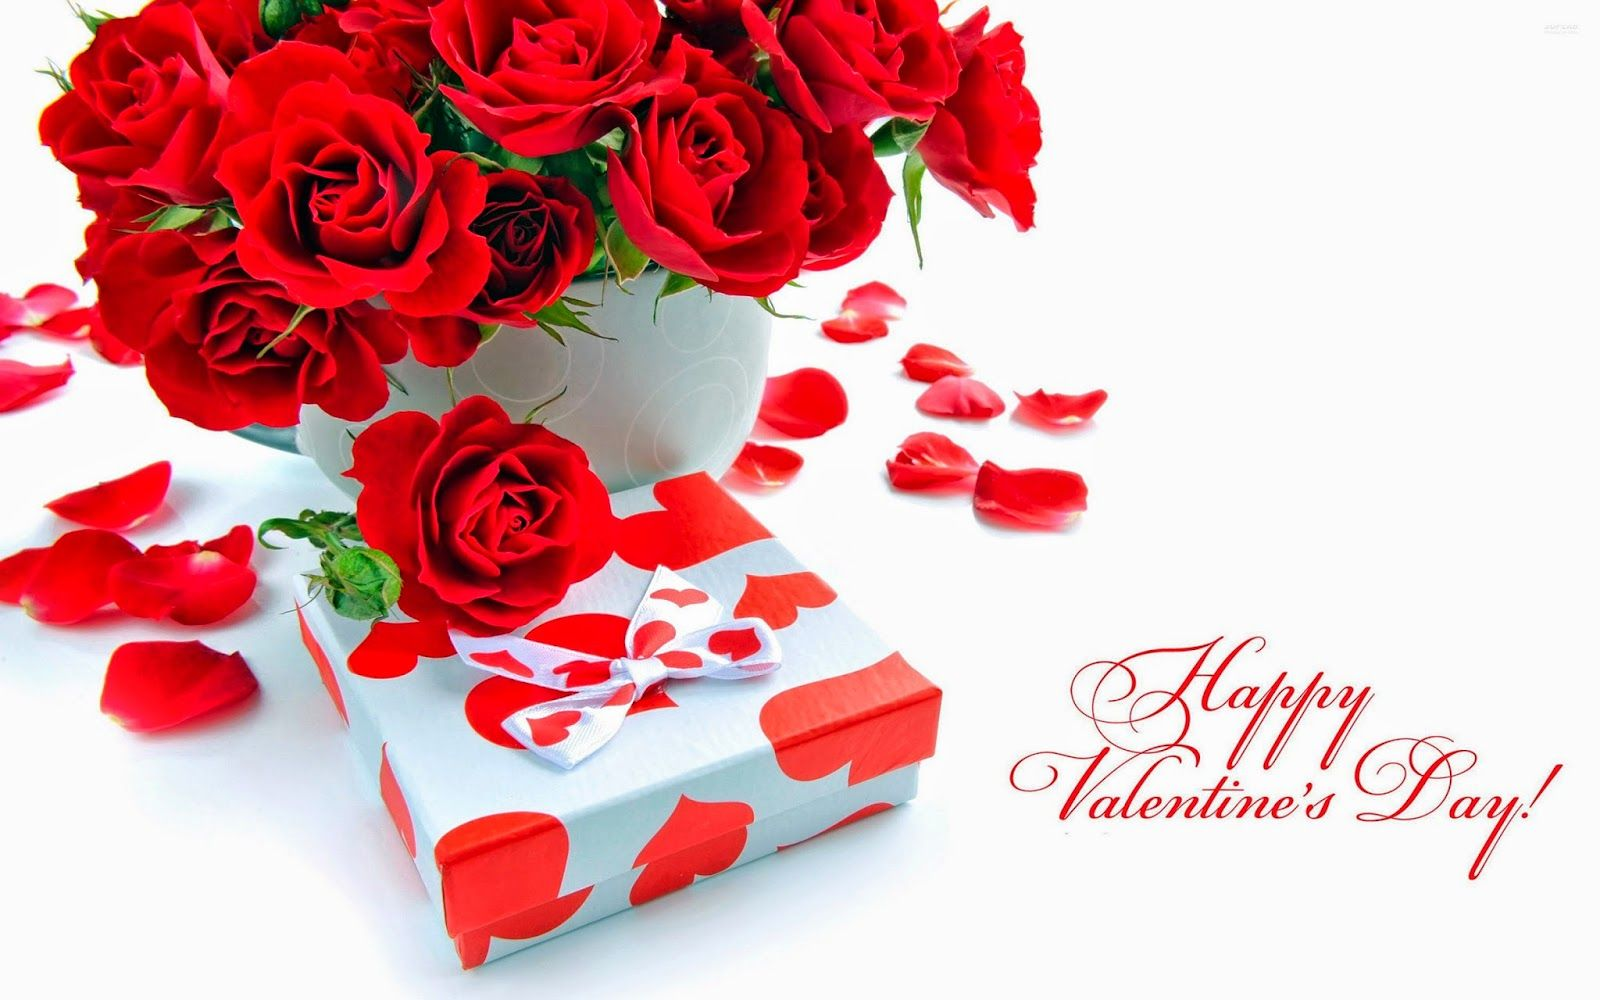 Valentines Day Wallpaper 37 In 2021 Happy Valentines Day Pictures Happy Valentines Day Images Happy Valentines Day Card